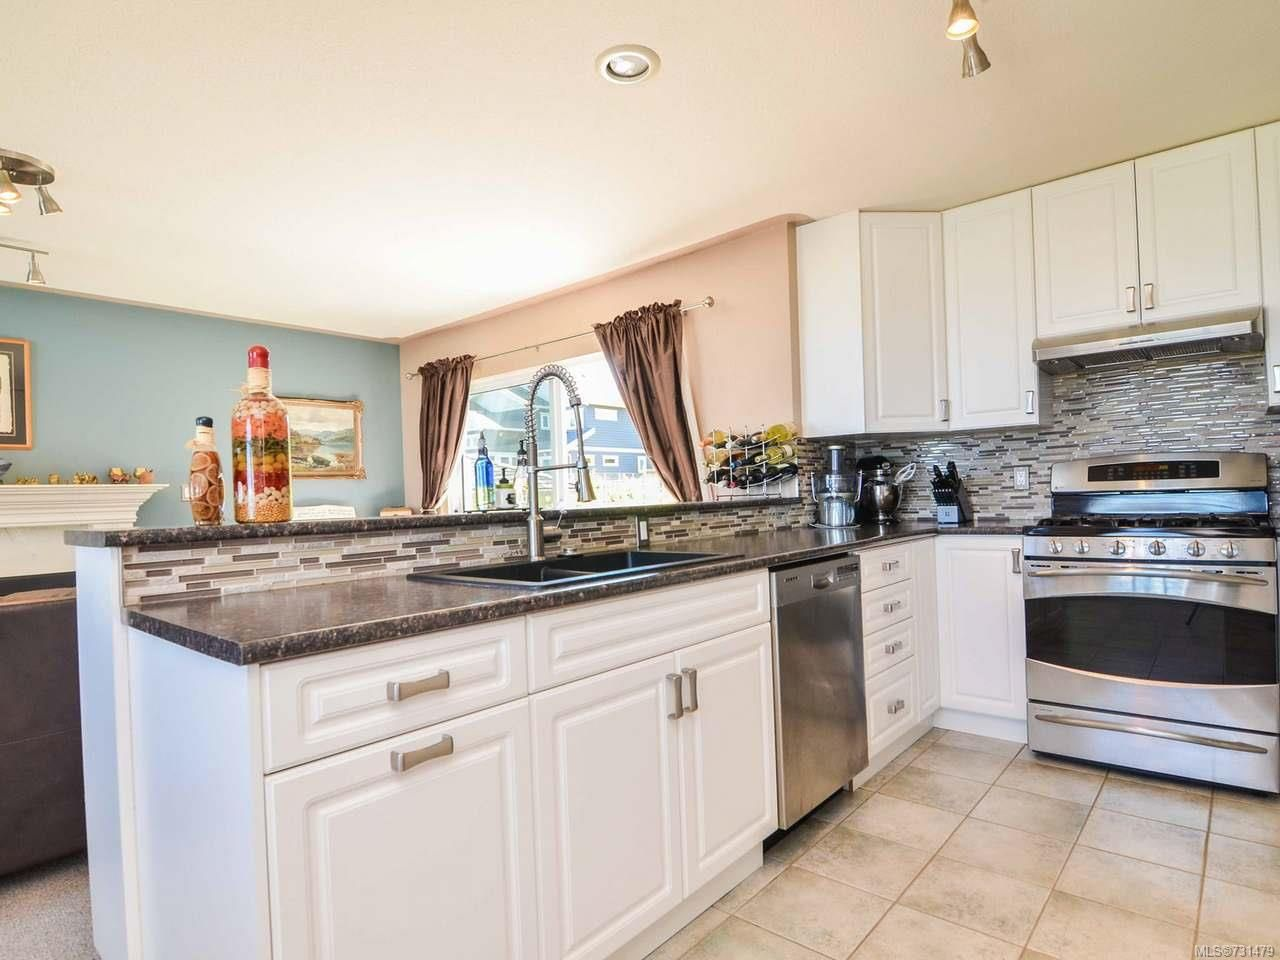 Photo 3: Photos: 753 Bowen Dr in CAMPBELL RIVER: CR Willow Point House for sale (Campbell River)  : MLS®# 731479